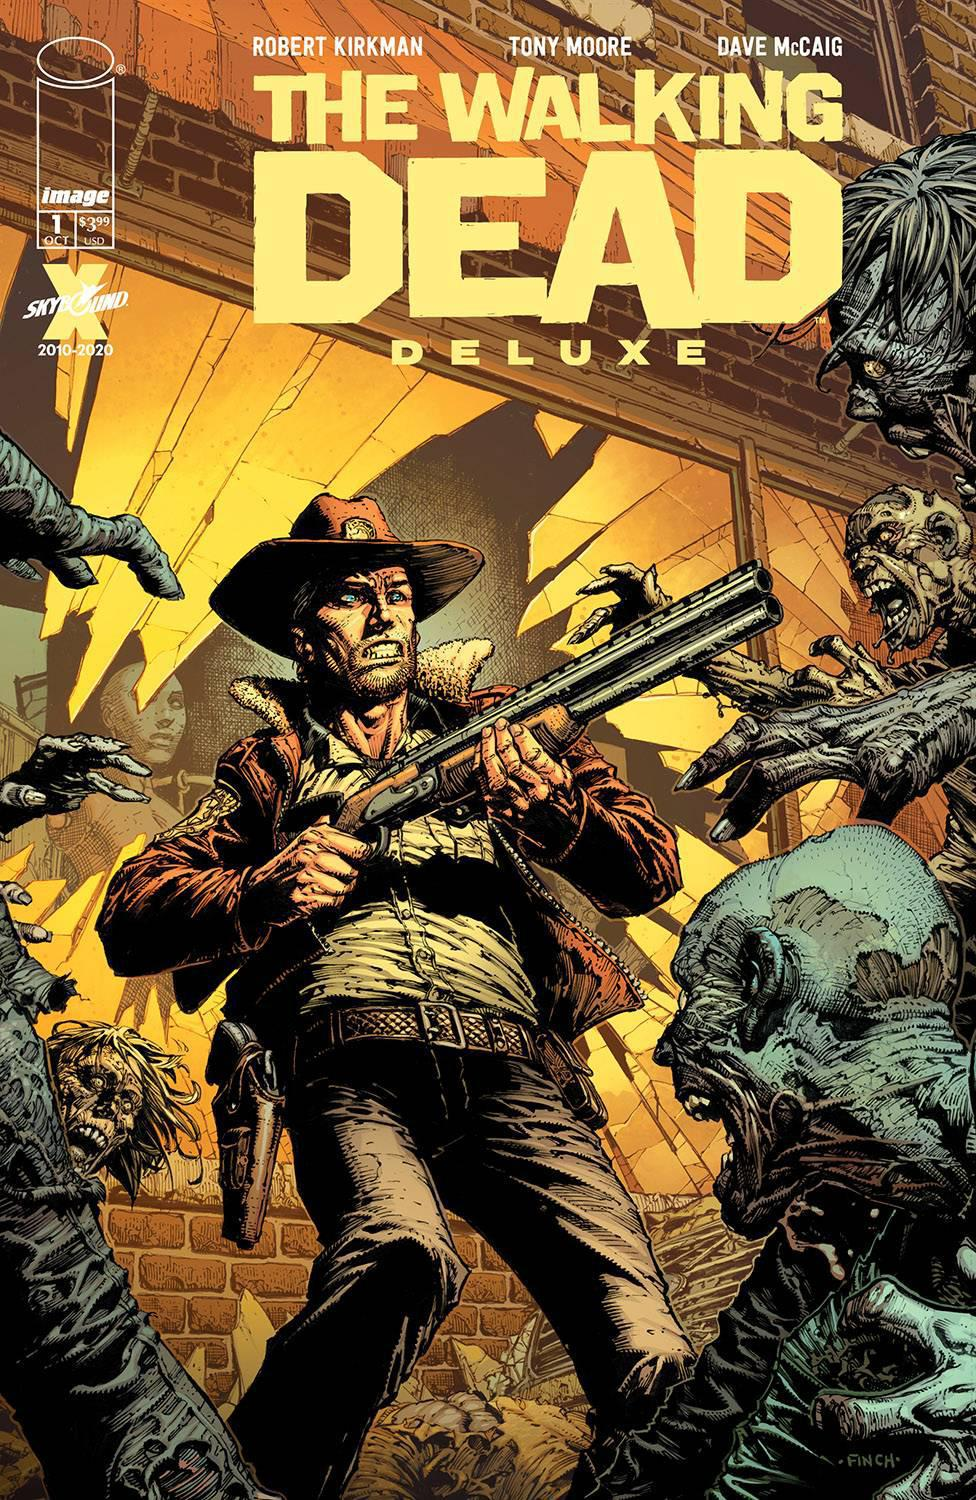 WALKING DEAD DELUXE #1 COVER A FINCH & MCCAIG